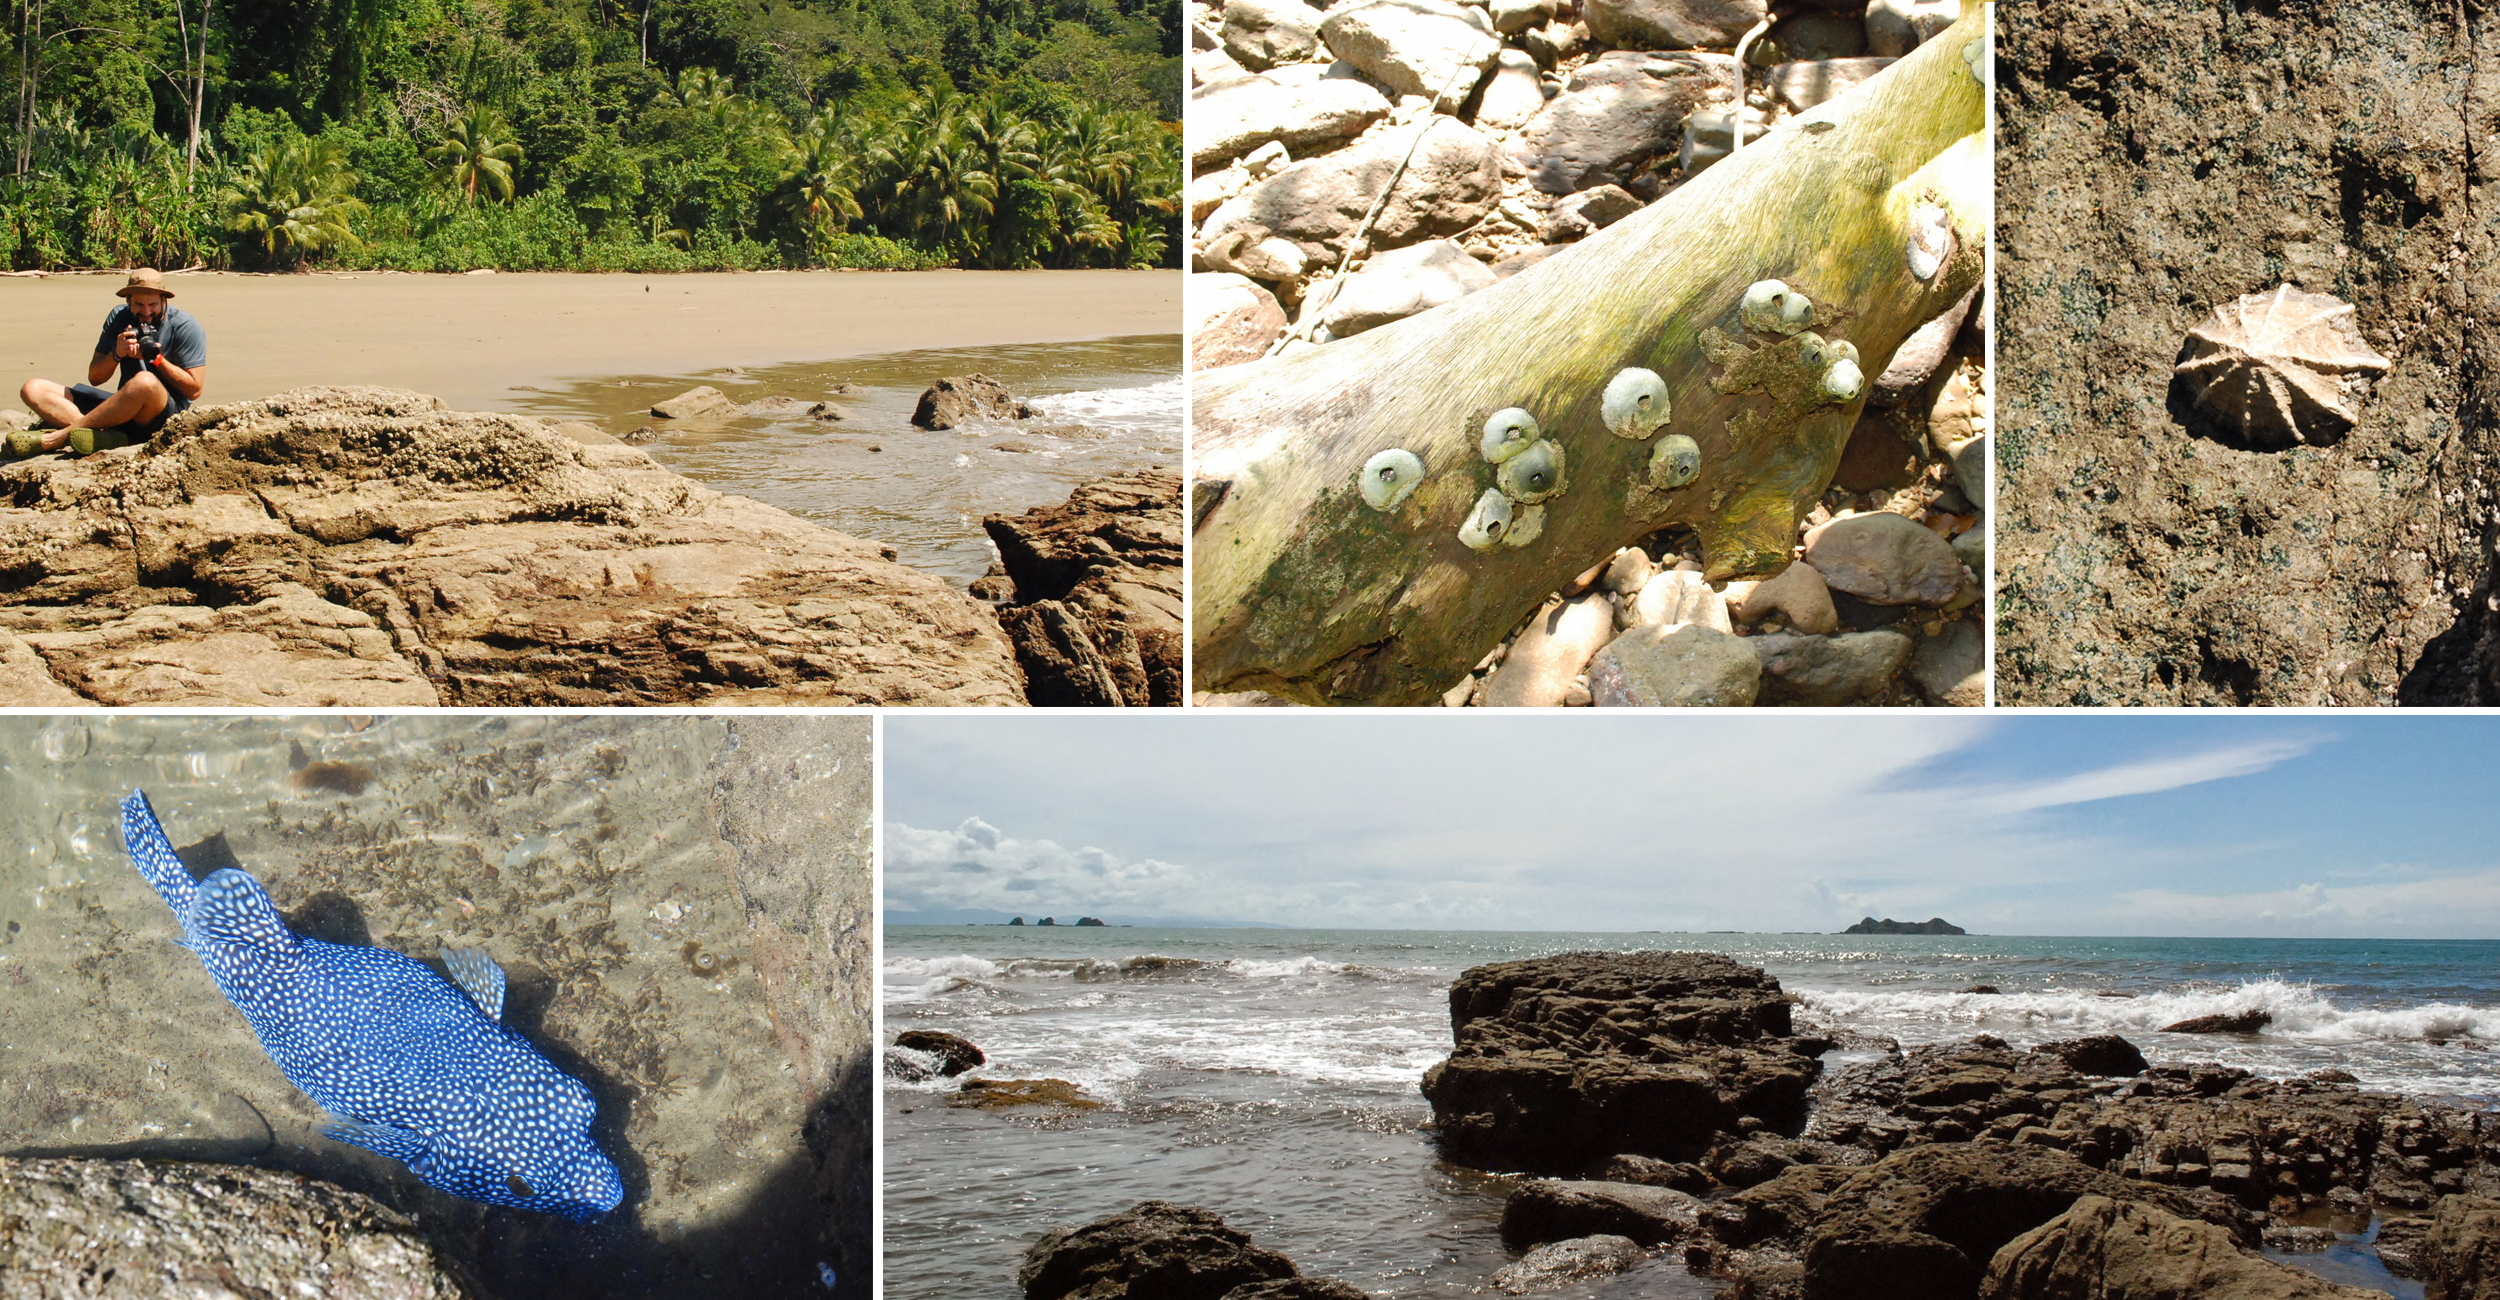 Exploring the intertidal zone, the ecosystem right at the coastline, and how the various life forms there have adapted to constantly changing water levels.